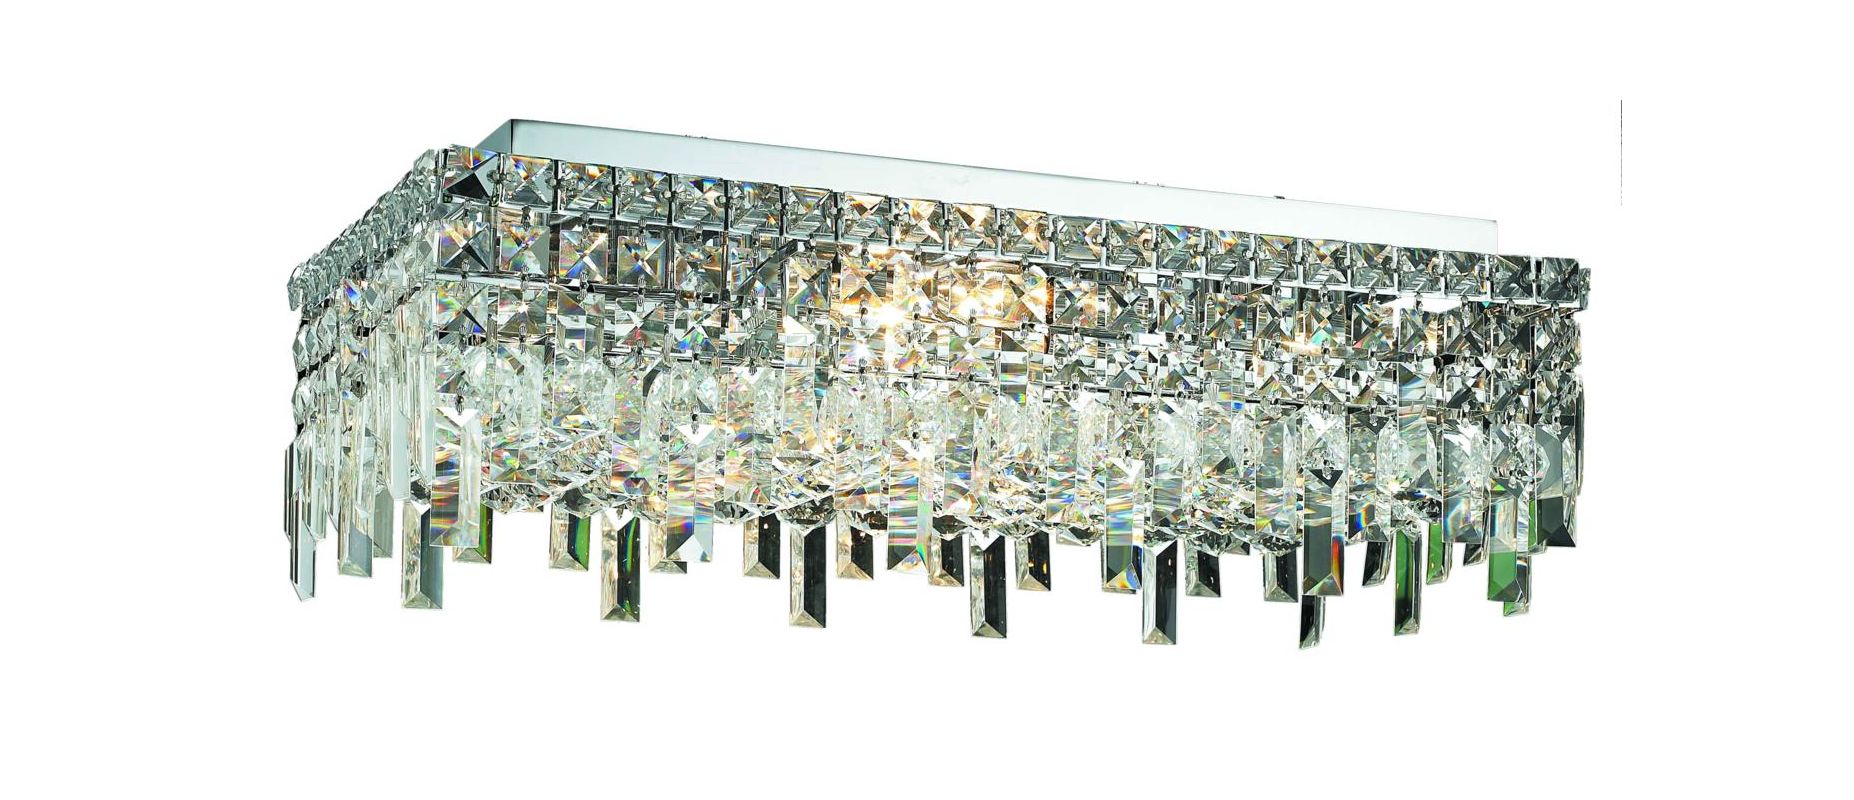 "Elegant Lighting 2035F24C Maxim 6-Light Single-Tier Flush Mount Sale $1170.00 ITEM#: 2013704 MODEL# :2035F24C/RC UPC#: 848145042659 Elegant Lighting 2035F24C Maxim 6-Light, Single-Tier Flush Mount Crystal Chandelier, Finished in Chrome with Clear Crystals Elegant Lighting 2035F24C Features: Base Finish: Chrome with Clear Crystal Choose from Royal Cut, Elegant Cut, Swarovski Spectra or Swarovski Elements Crystal Types: Royal Cut- a combination of high quality, lead-free, machine cut and polished crystals, and full-lead machine-cut crystals, whose appearance rivals that of a more expensive chandelier crystal Elegant Cut- Elegant Cut Crystals consist of 30% high quality full-lead machine-cut crystal that is above industry standards. It possesses sharp faceting polished to a visual radiance Swarovski Spectra- Beautiful and reliable quality crystal by Swarovski Swarovski Elements- An exercise in technical perfection, Swarovski Elements crystal meets all standards of perfection. It is original, flawless and brilliant, possessing lead oxide in excess of 33%. Made in Austria, each facet is perfectly cut and polished by machine to maintain optical purity and consistency Uses (6) 60-Watt Candelabra Base Bulbs (not included) Hanging weight 43 lbs Product Dimensions: 7""H x 12""D x 24""W From the Elegant Lighting Maxim Collection Elegant Lighting, headquartered in Philadelphia, PA, is a premium designer of crystal lighting. Since its inception in the year 2000, Elegant Lighting has made innovative strides in crystal lighting design, that resulted in them becoming the fastest-growing crystal lighting company in the industry. Elegant Lighting actively ensures, throughout every step of production, that the lighting you purchase is a beautiful piece of art, and that it graces your home or business with its sheer perfection. :"